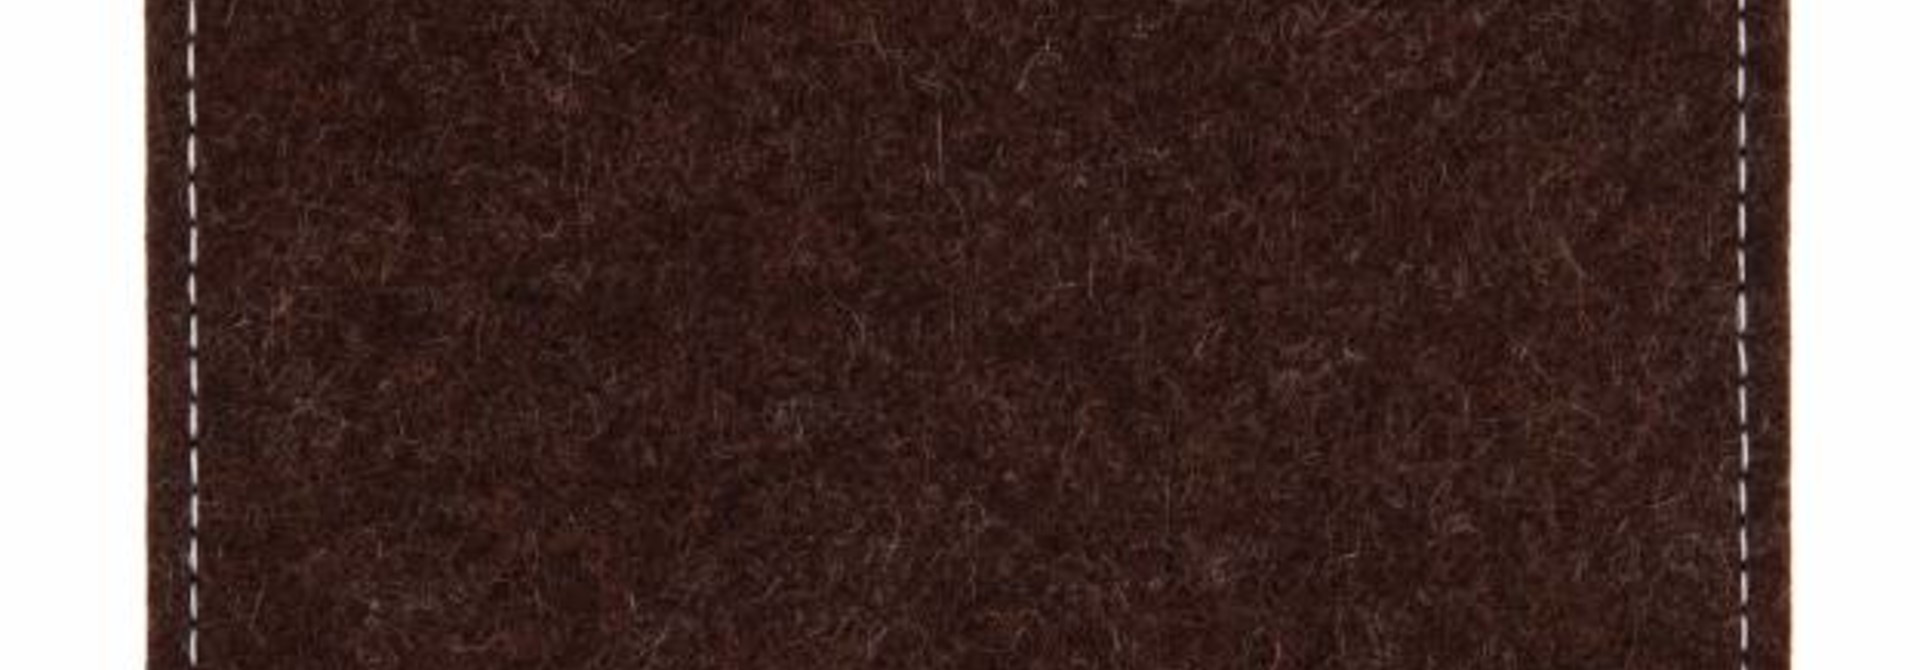 XPS Sleeve Truffle-Brown